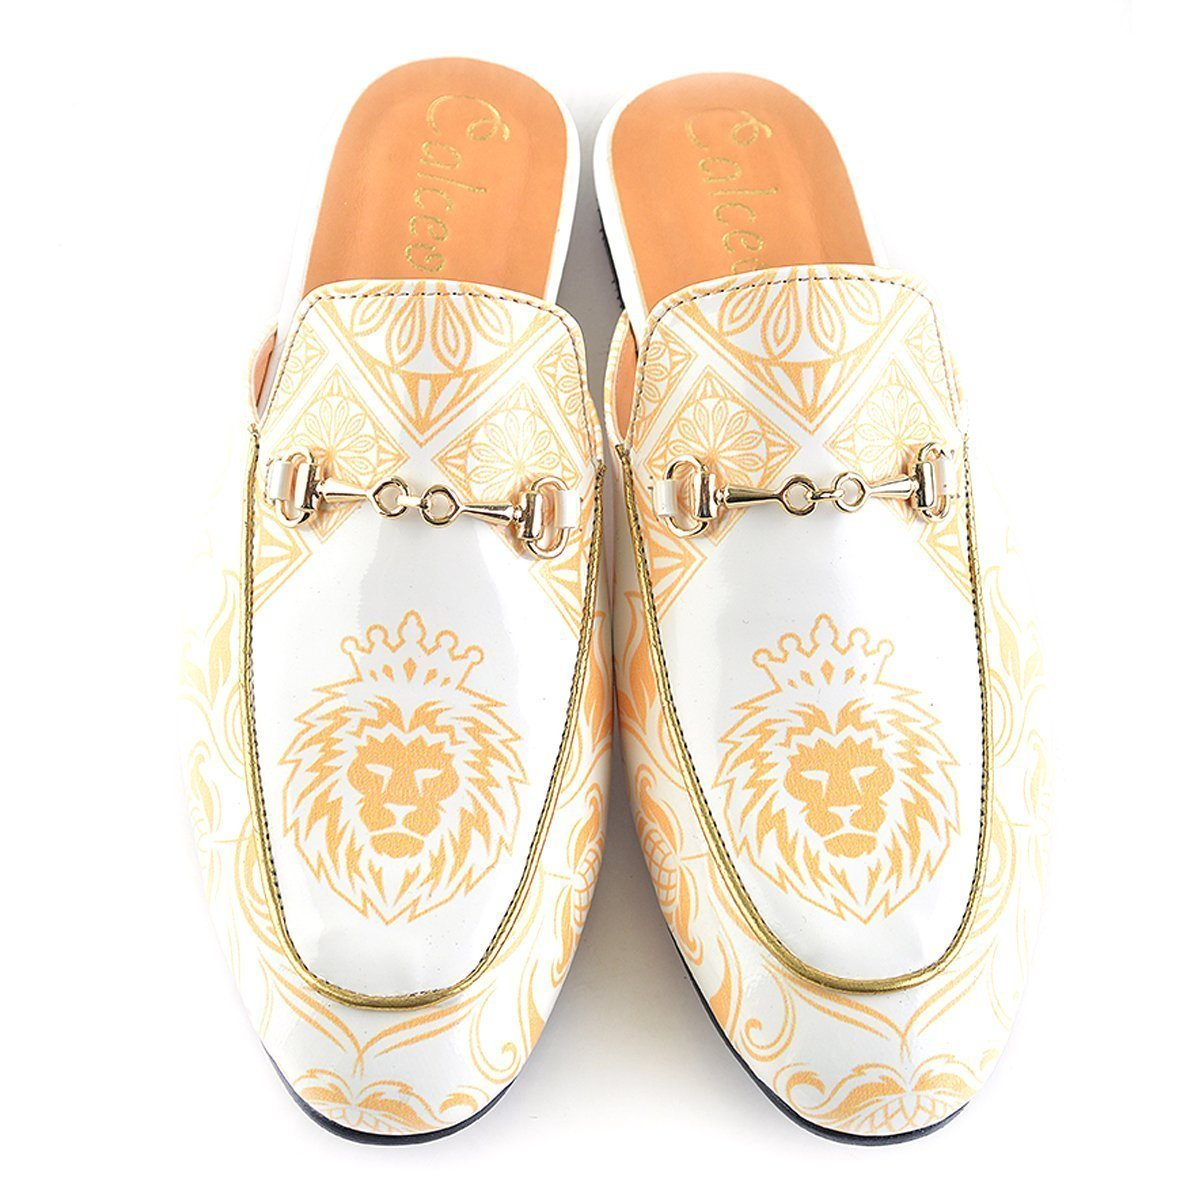 White and Orange, Flowers Leon Pattern Slip-On Loafer - CAG109